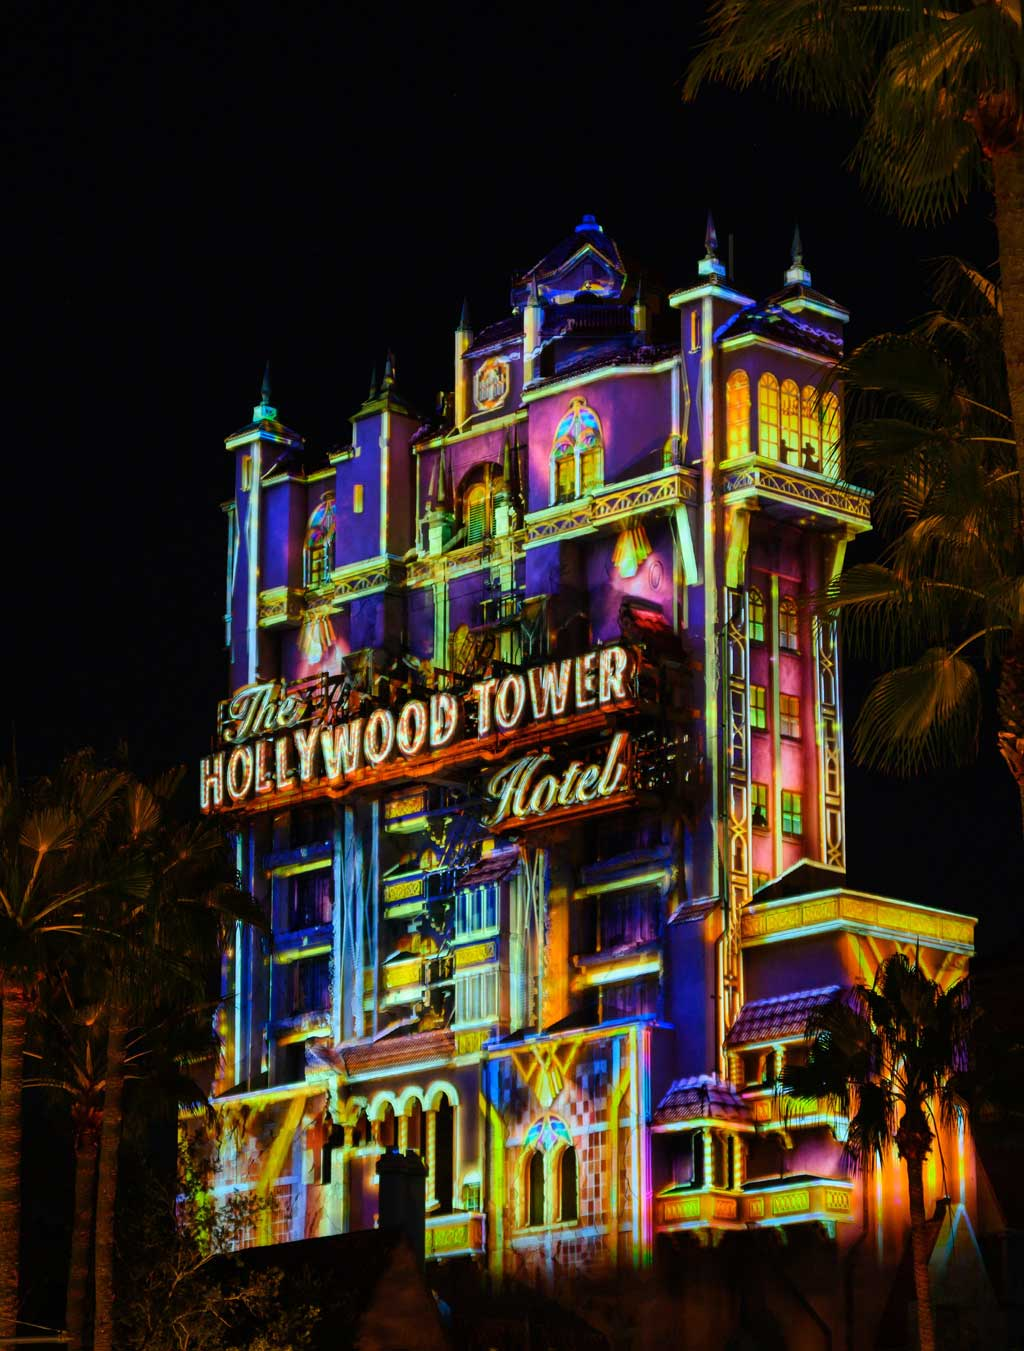 The Hollywood Tower Hotel is awash in a brilliance evoking the golden age of imagination and adventure when it transforms into a Beacon of Magic at Disney's Hollywood Studios at Walt Disney World Resort in Lake Buena Vista, Florida, as part of the resorts 50th anniversary celebration. (Todd Anderson, photographer)